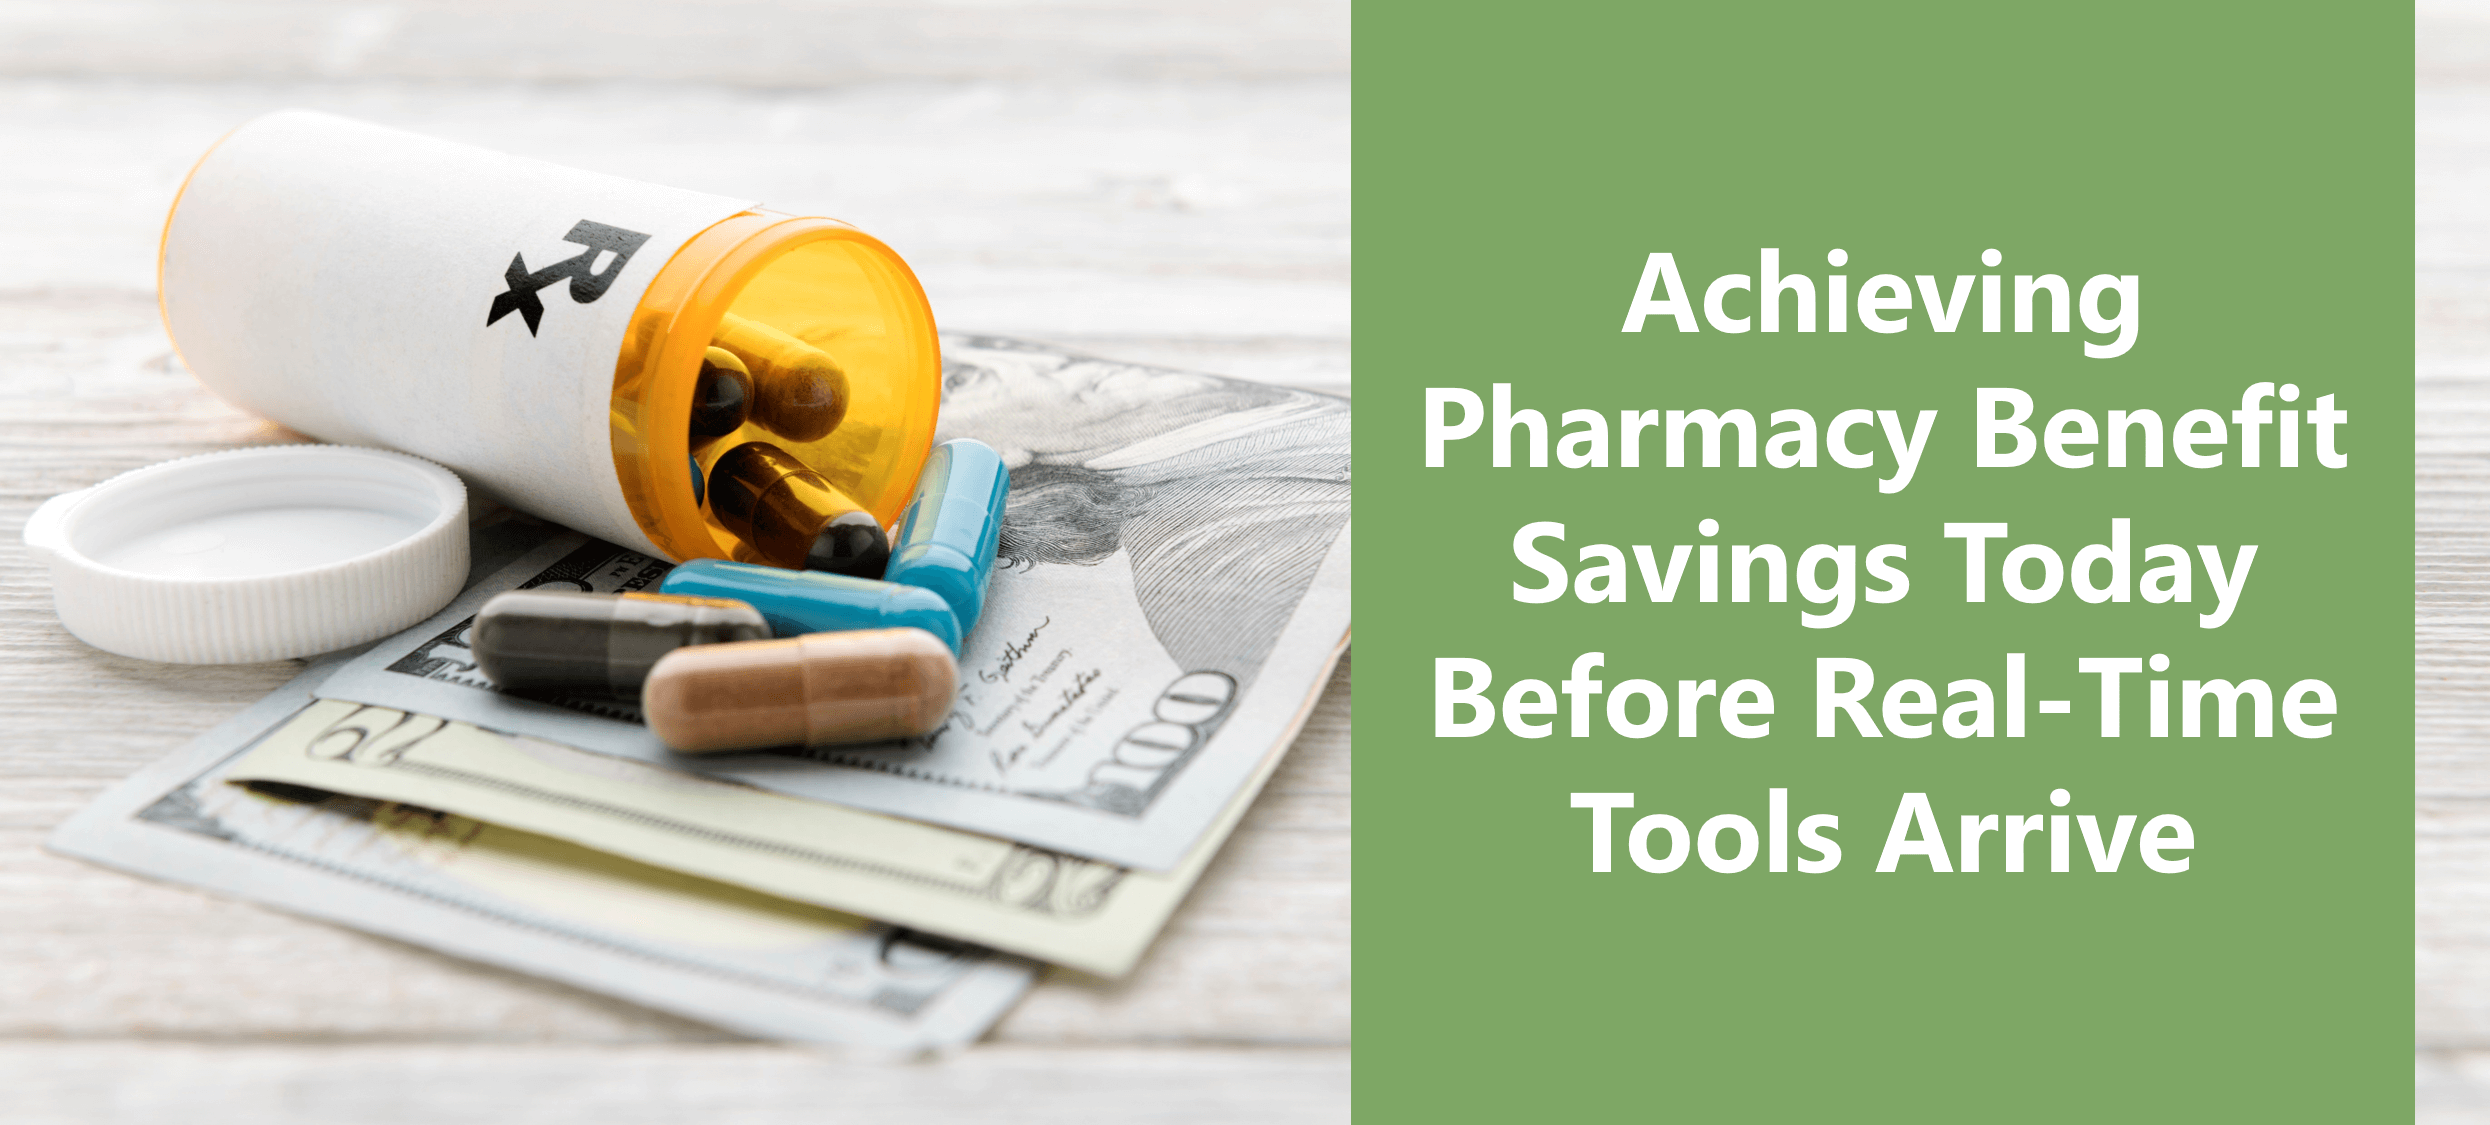 Achieving Pharmacy Benefit Savings Today Before Real-Time Tools Arrive